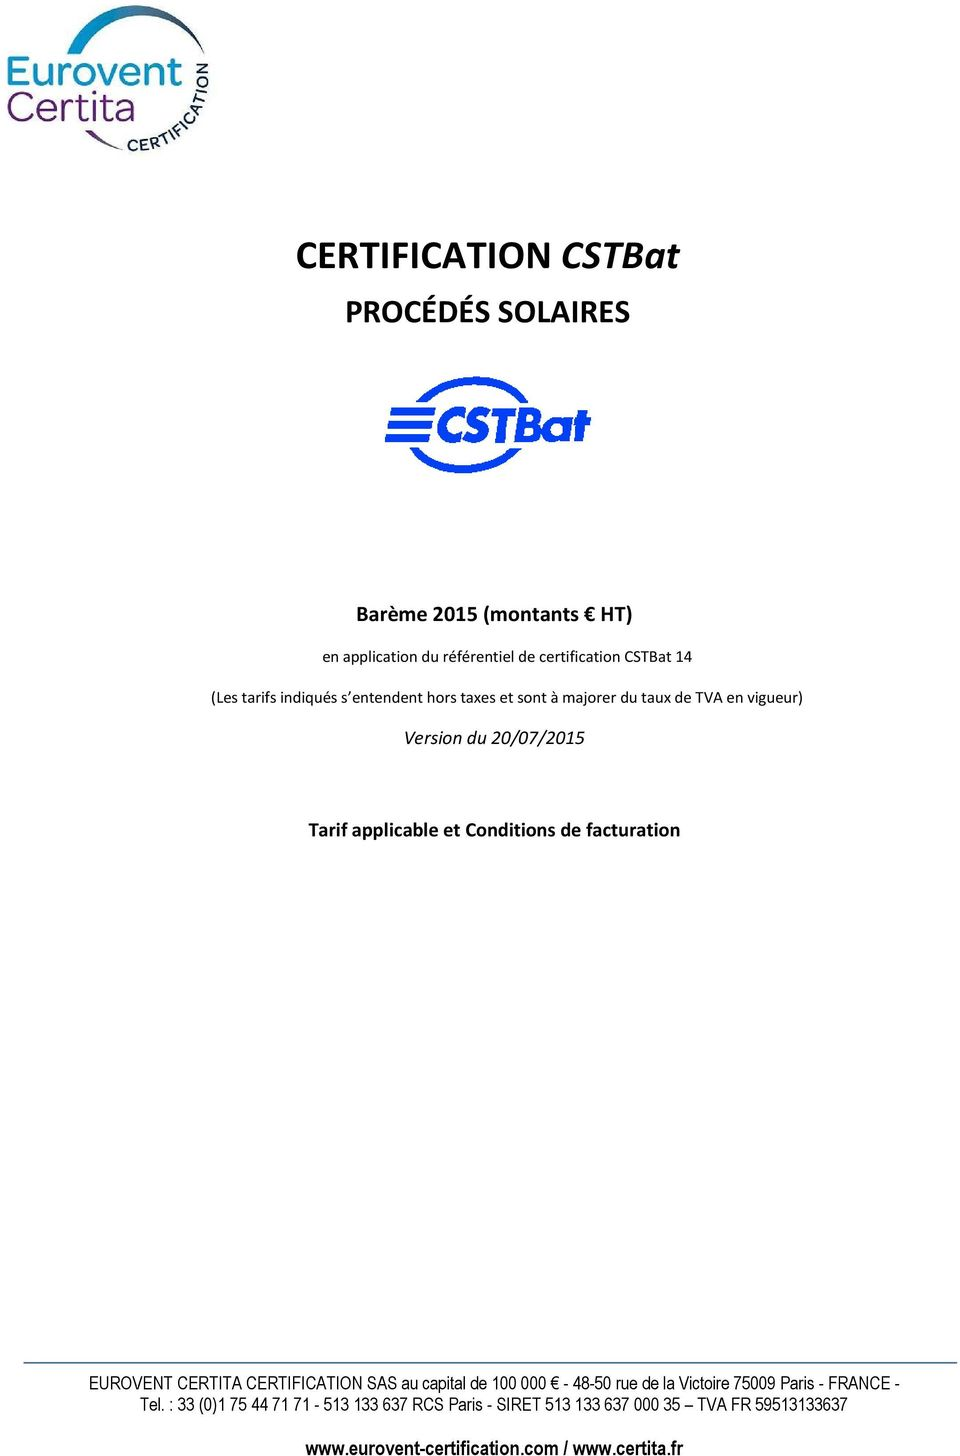 Conditions de facturation EUROVENT CERTITA CERTIFICATION SAS au capital de 100 000-48-50 rue de la Victoire 75009 Paris - FRANCE -